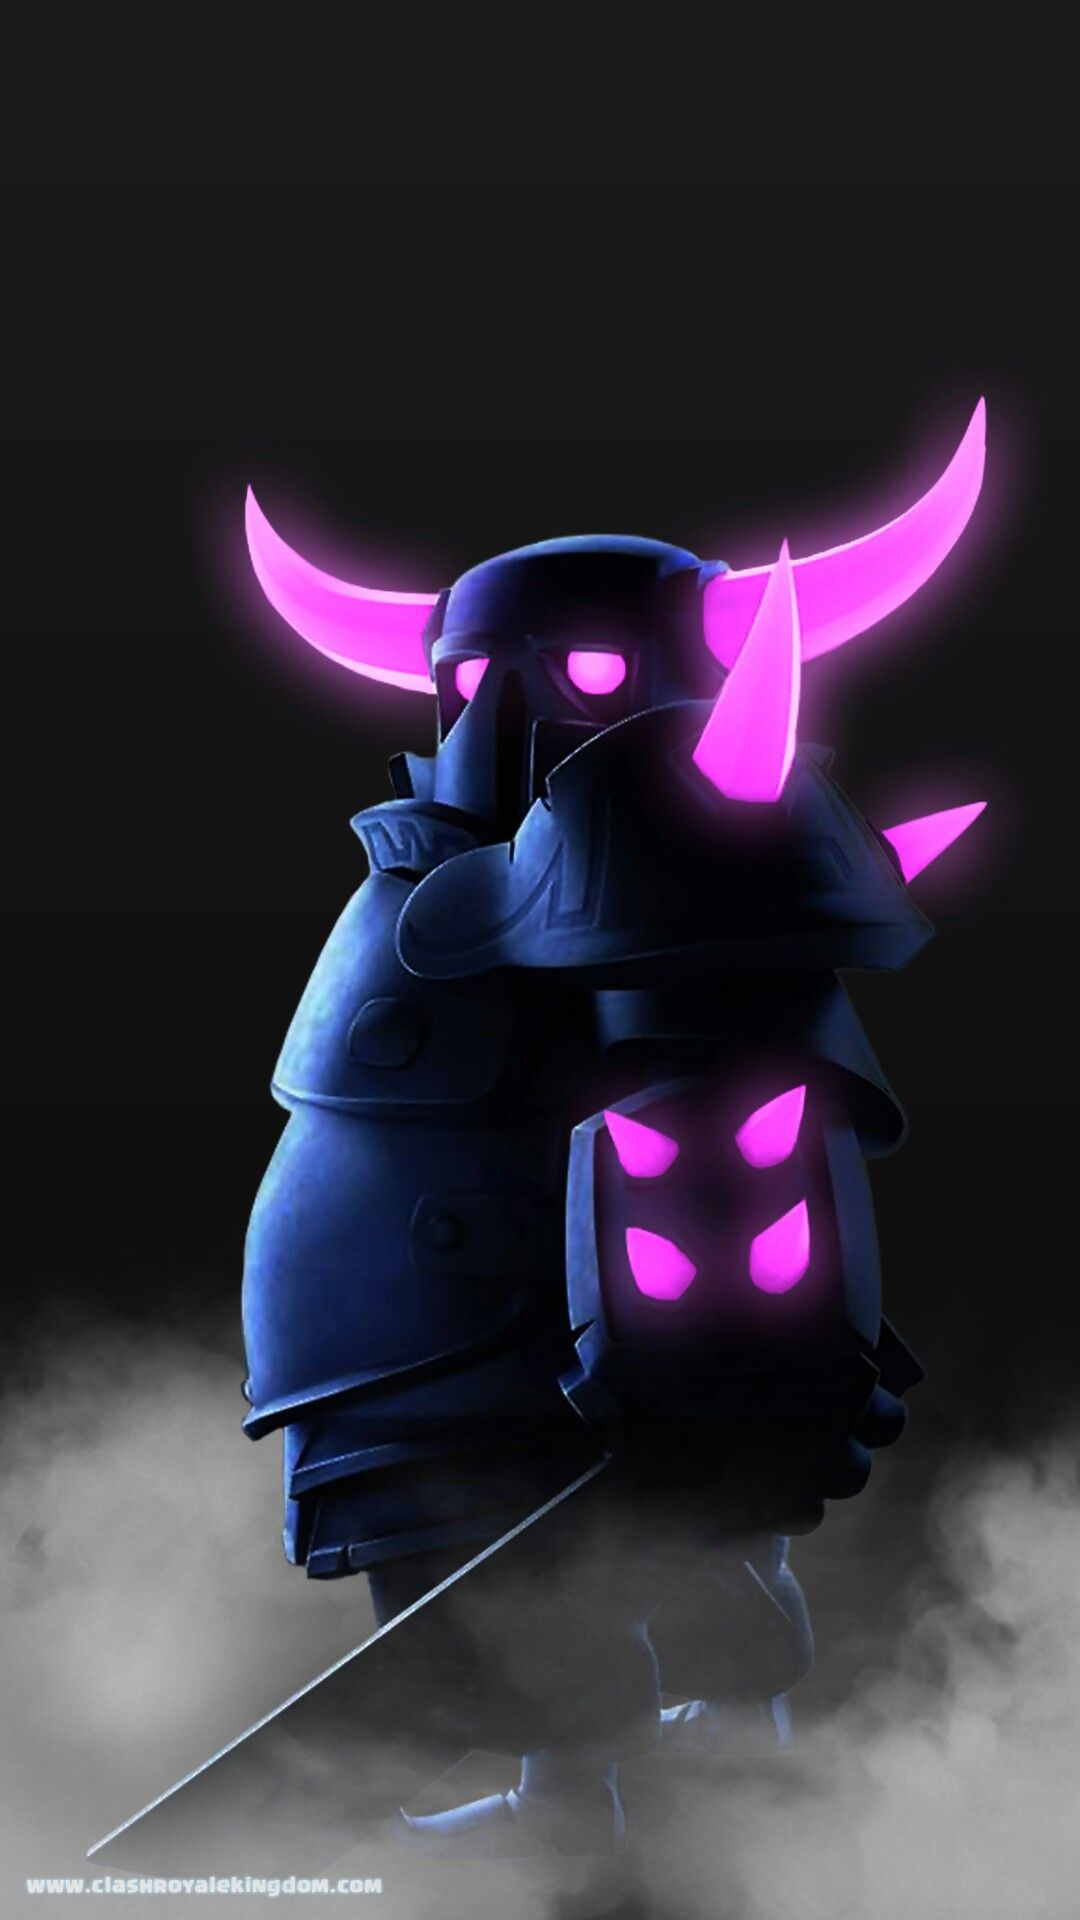 Glowing Pekka Supercell Hd Wallpaper Clash Royale Clash Of Clans Wallpaper